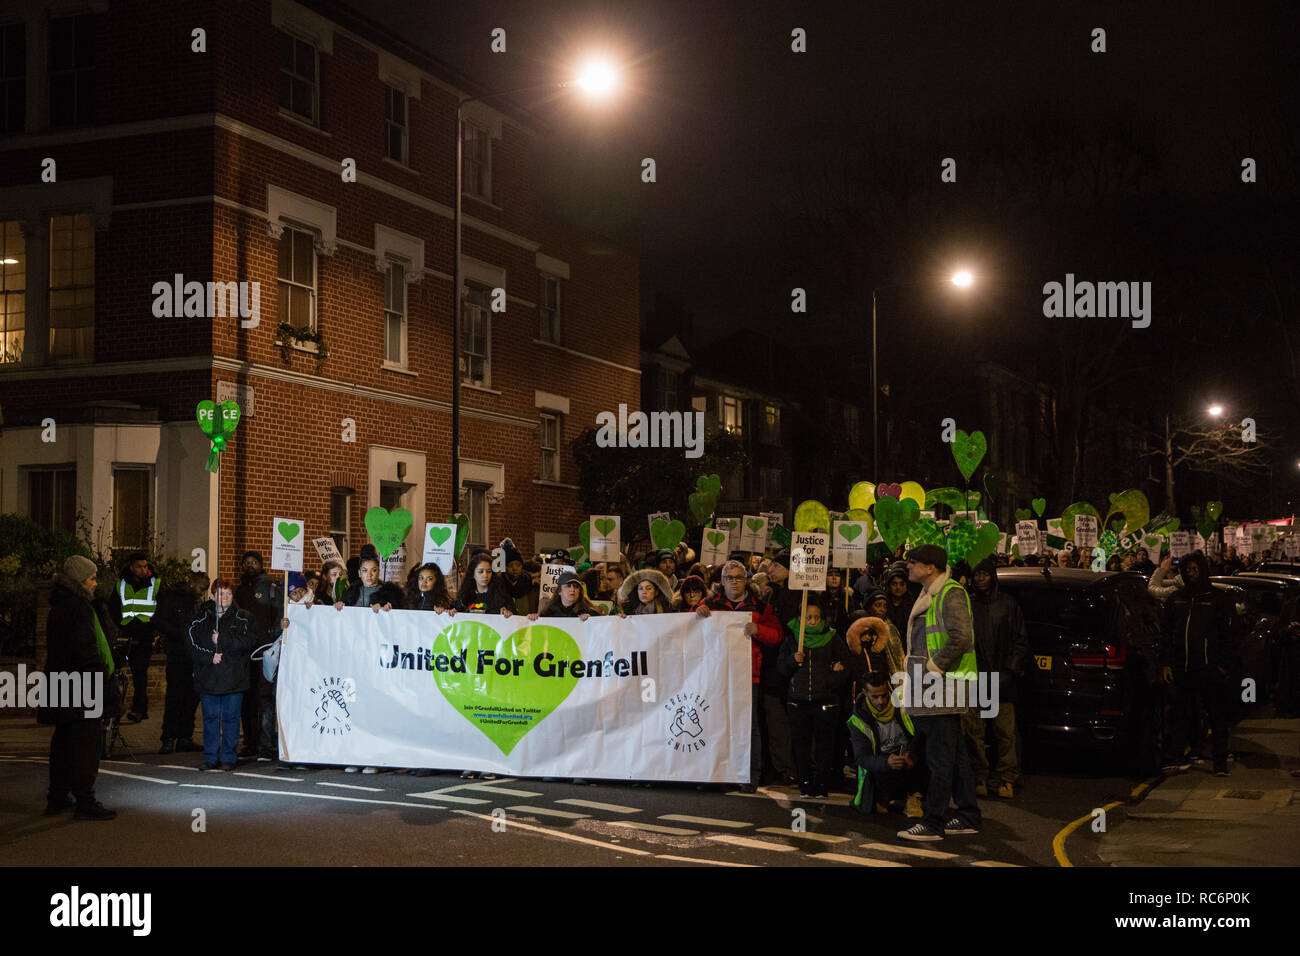 London, UK. 14th January, 2019. Members of the Grenfell community take part in the Grenfell Silent Walk around West Kensington on the monthly anniversary of the fire on 14th June 2017. 72 people died in the Grenfell Tower fire and over 70 were injured. Credit: Mark Kerrison/Alamy Live News - Stock Image